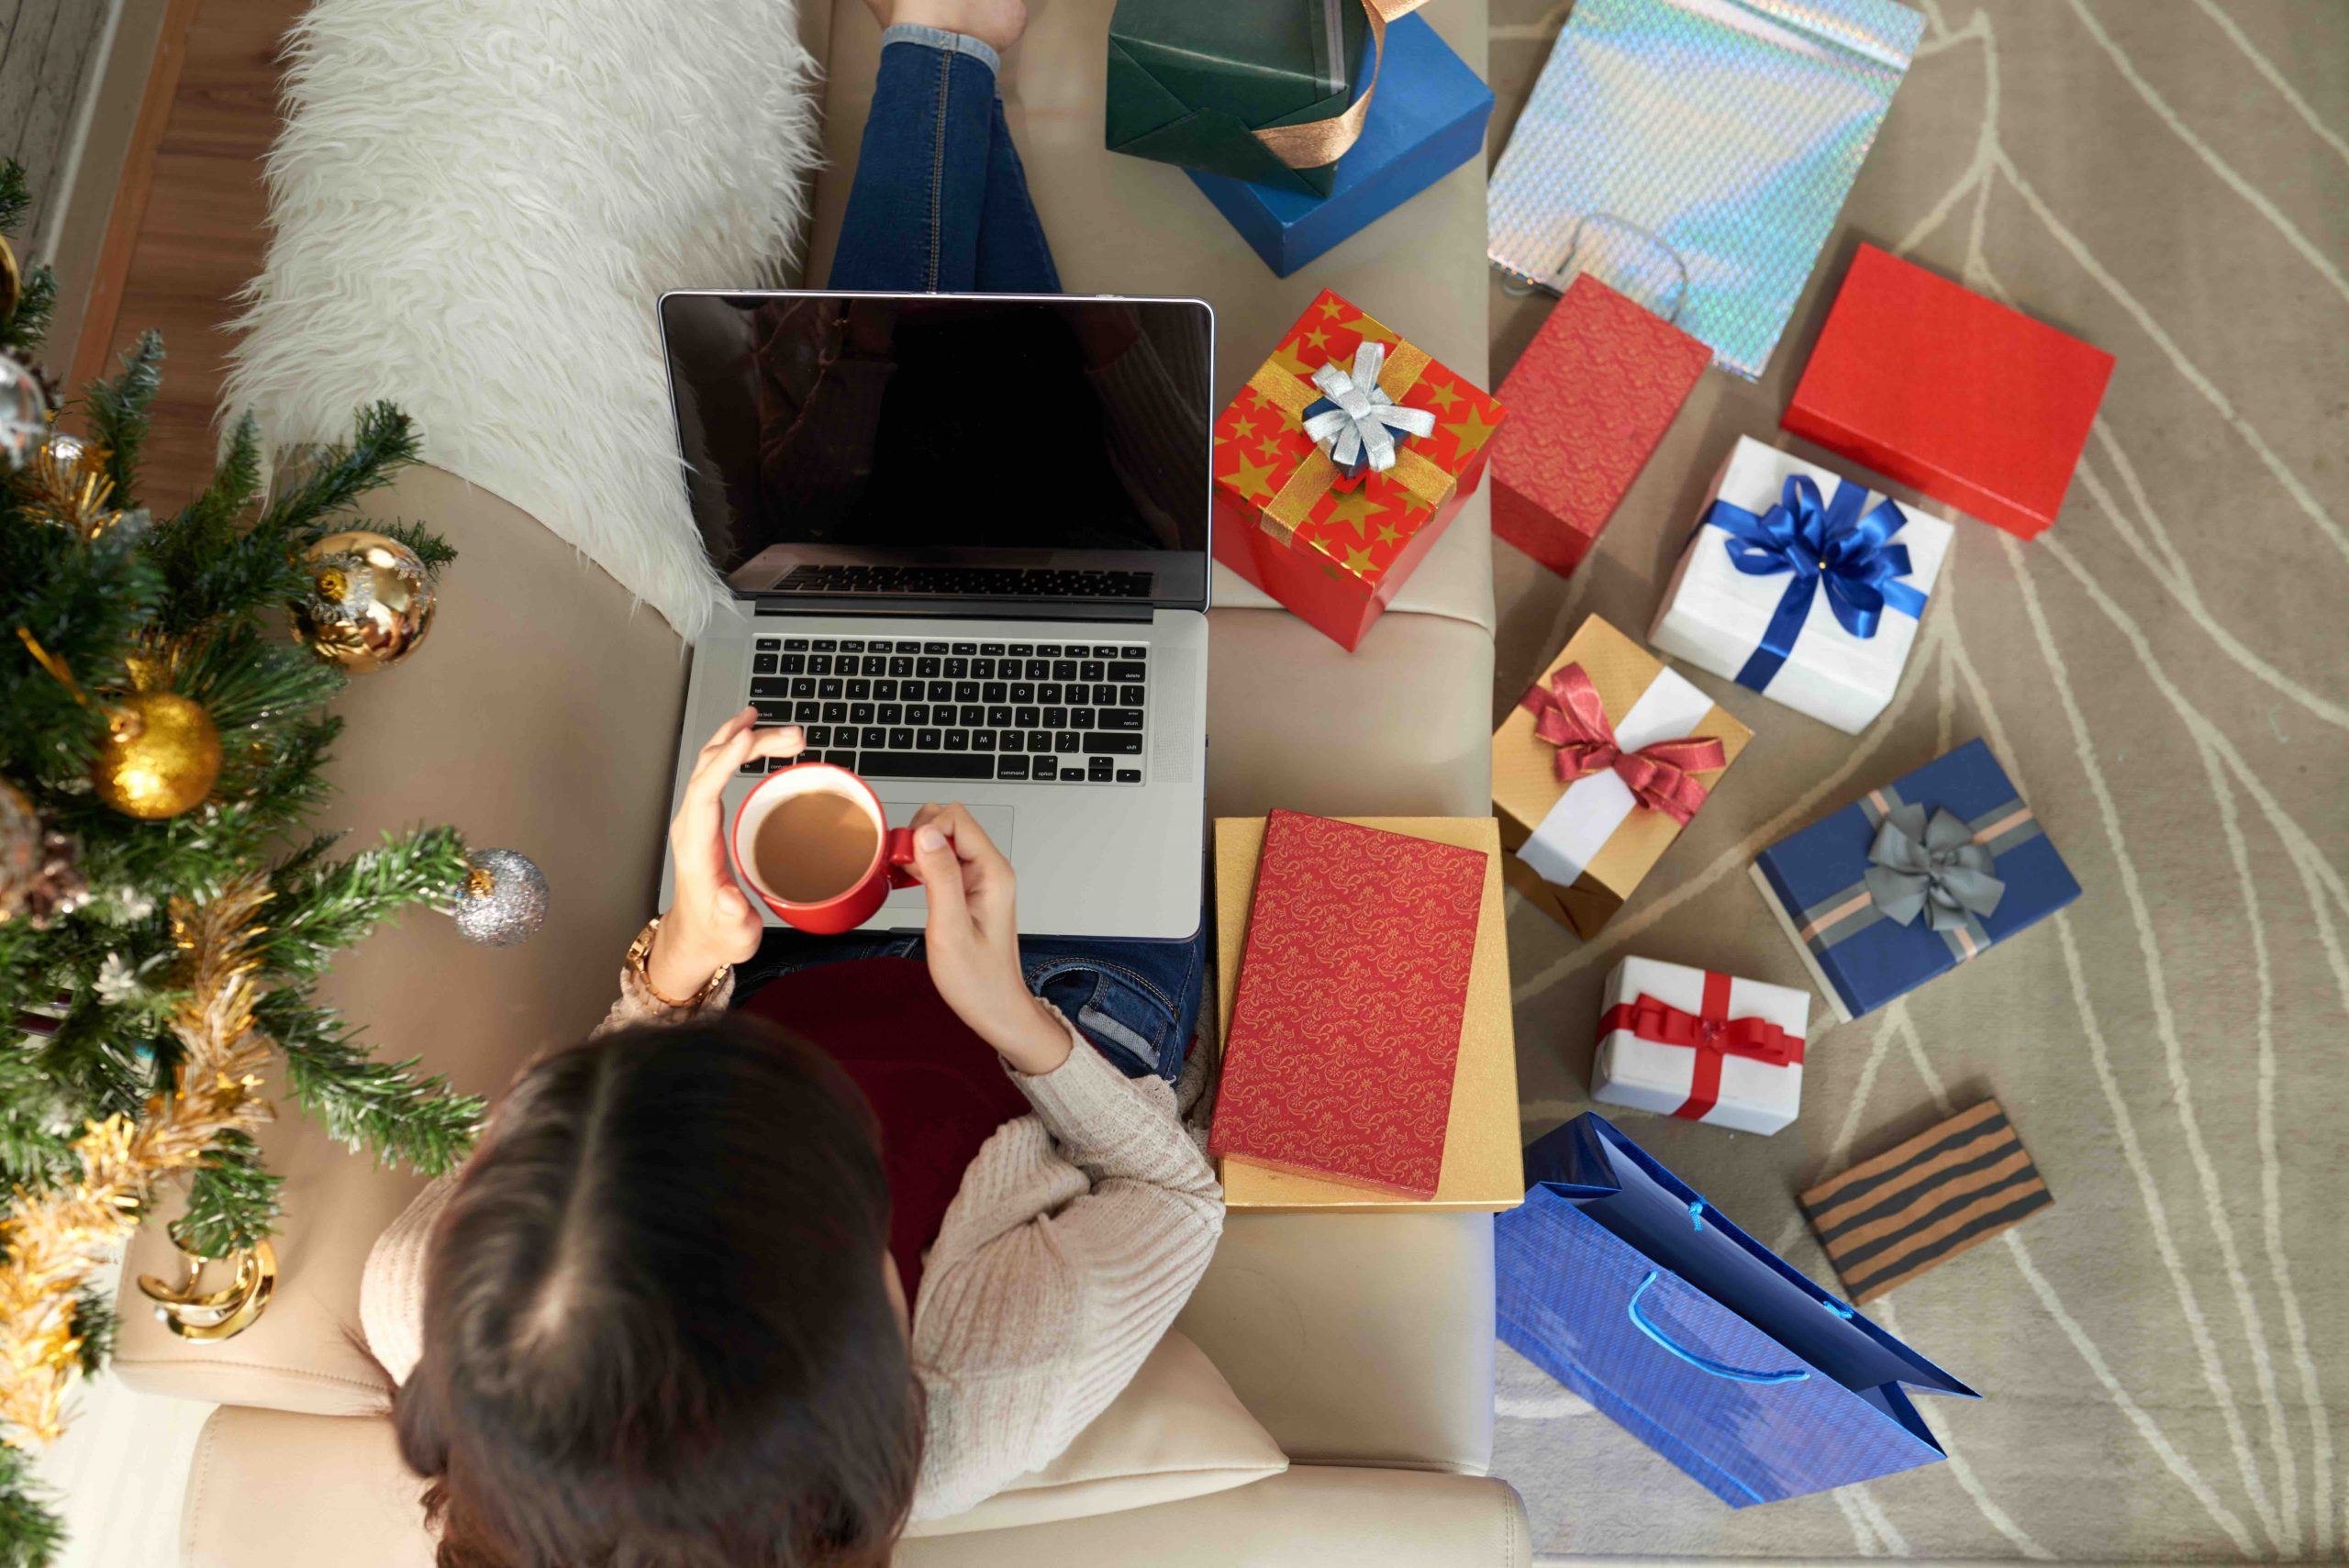 Woman sitting on sofa, drinking coffee and searching for sale on Christmas presents. Gift boxes are scattered around